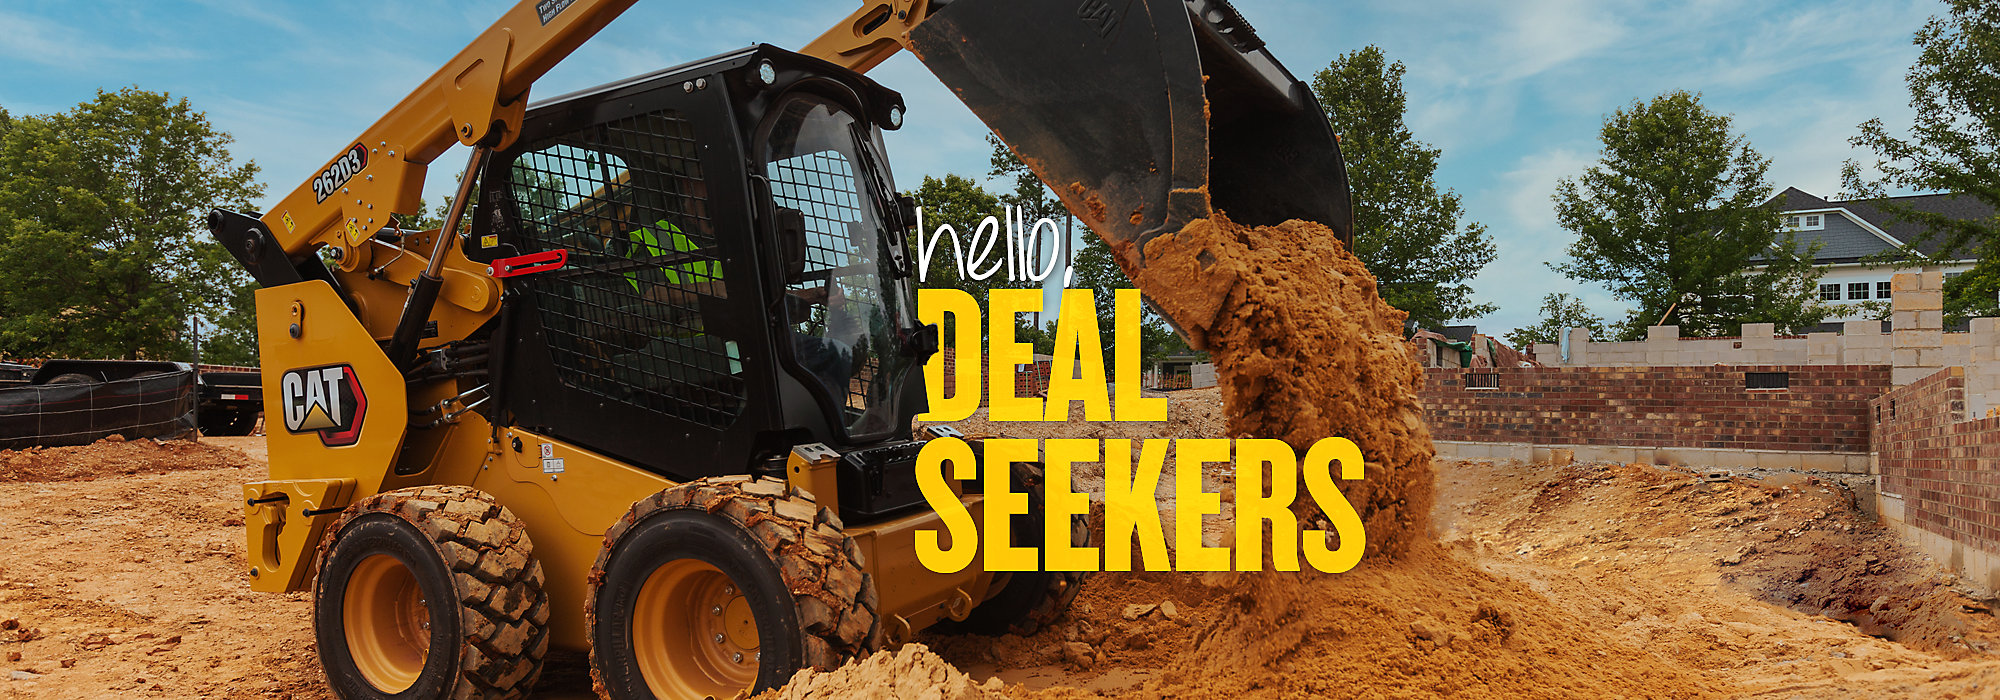 Cat Skid Steer Loaders - Hello, Deal Seekers